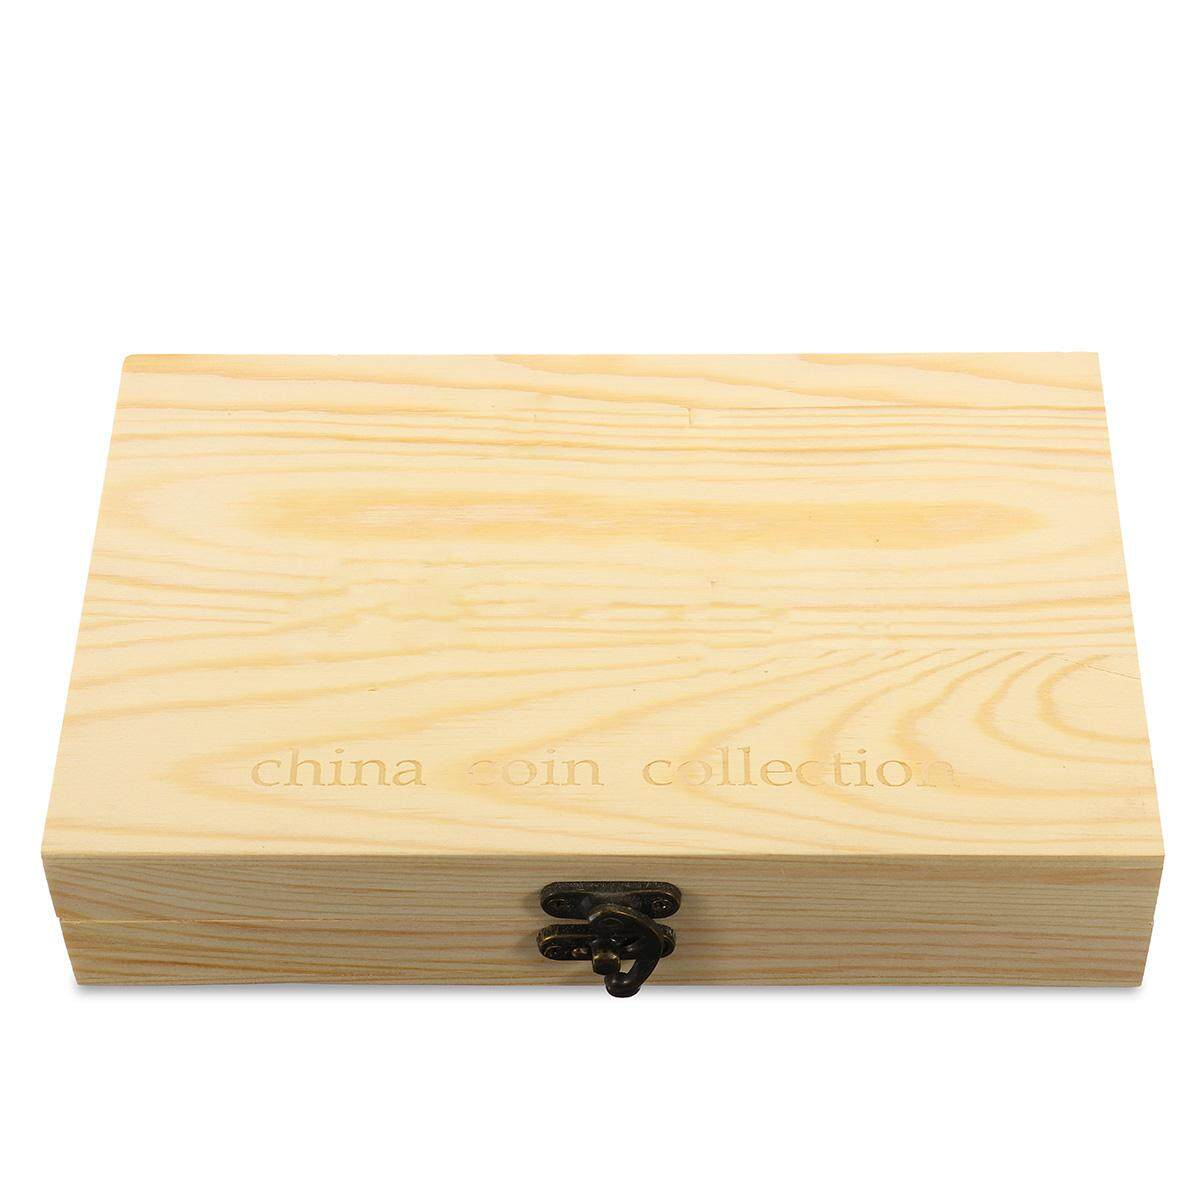 100pcs Round Wood Coins Display Storage Box Collectible Case For Certified Coin - intl